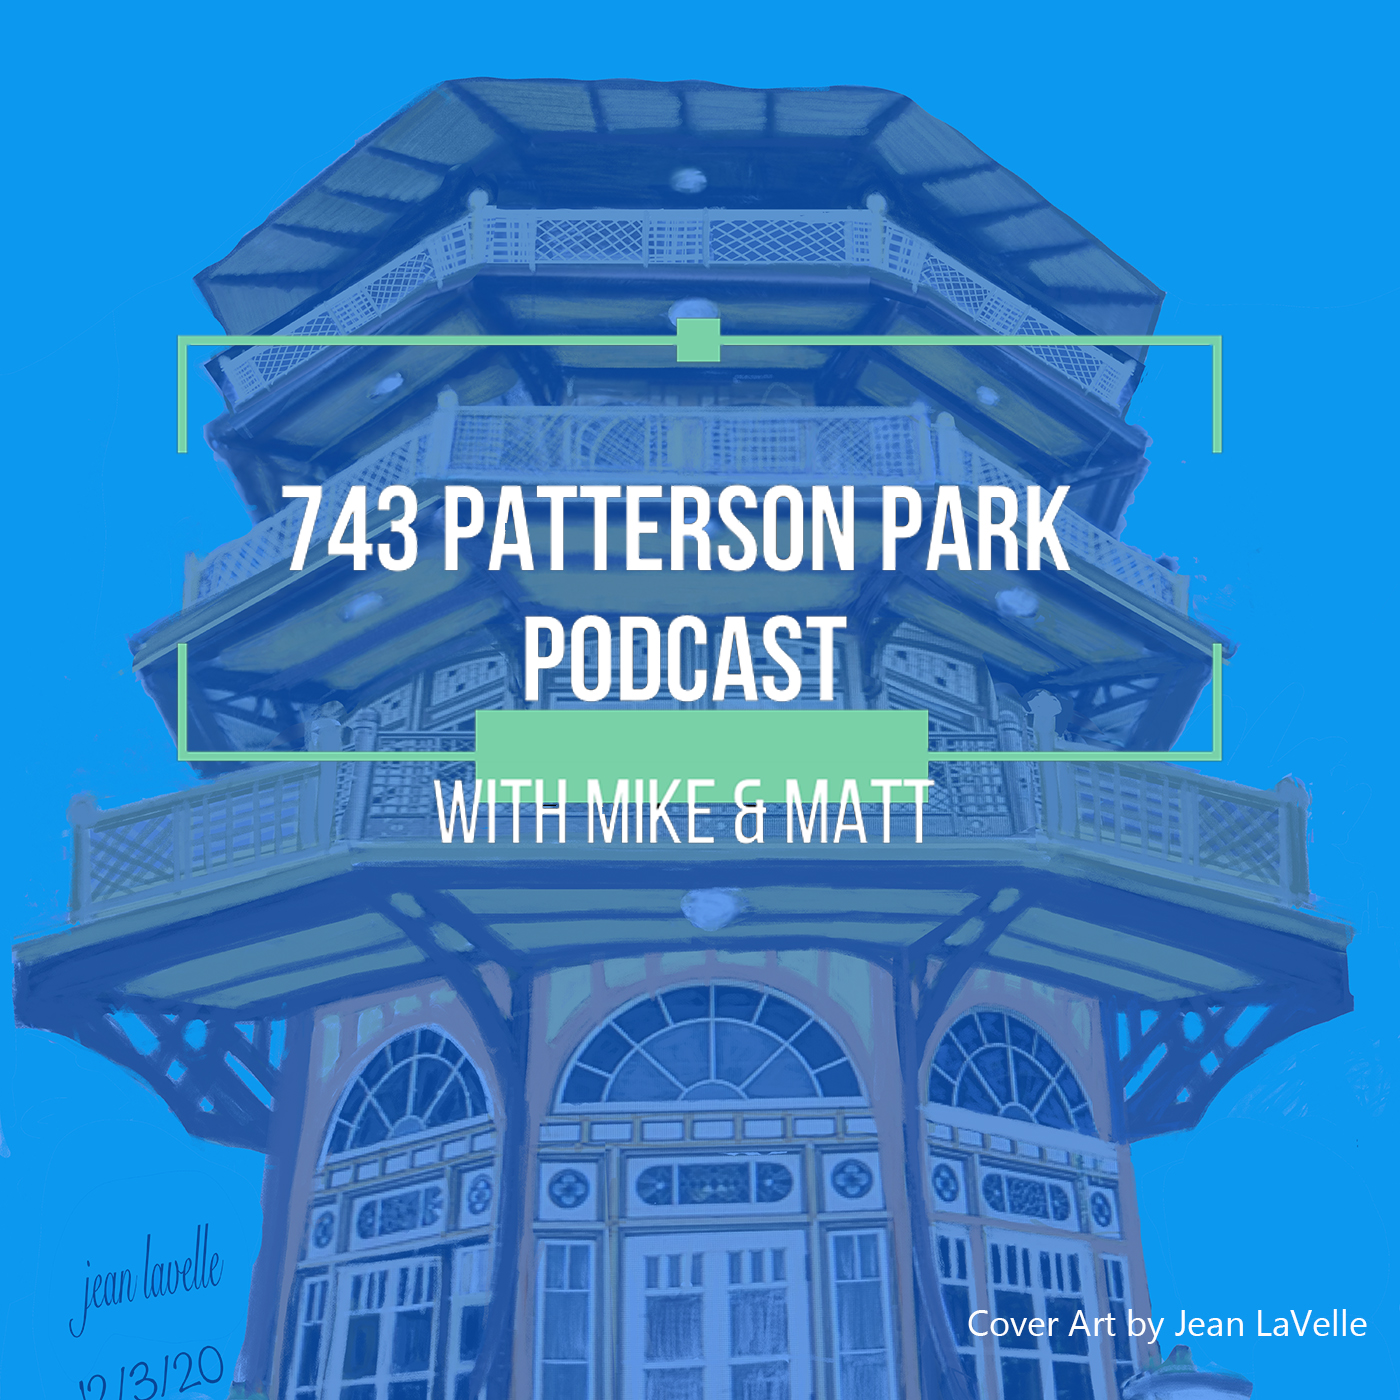 743 Patterson Park Podcast by US Event Photos